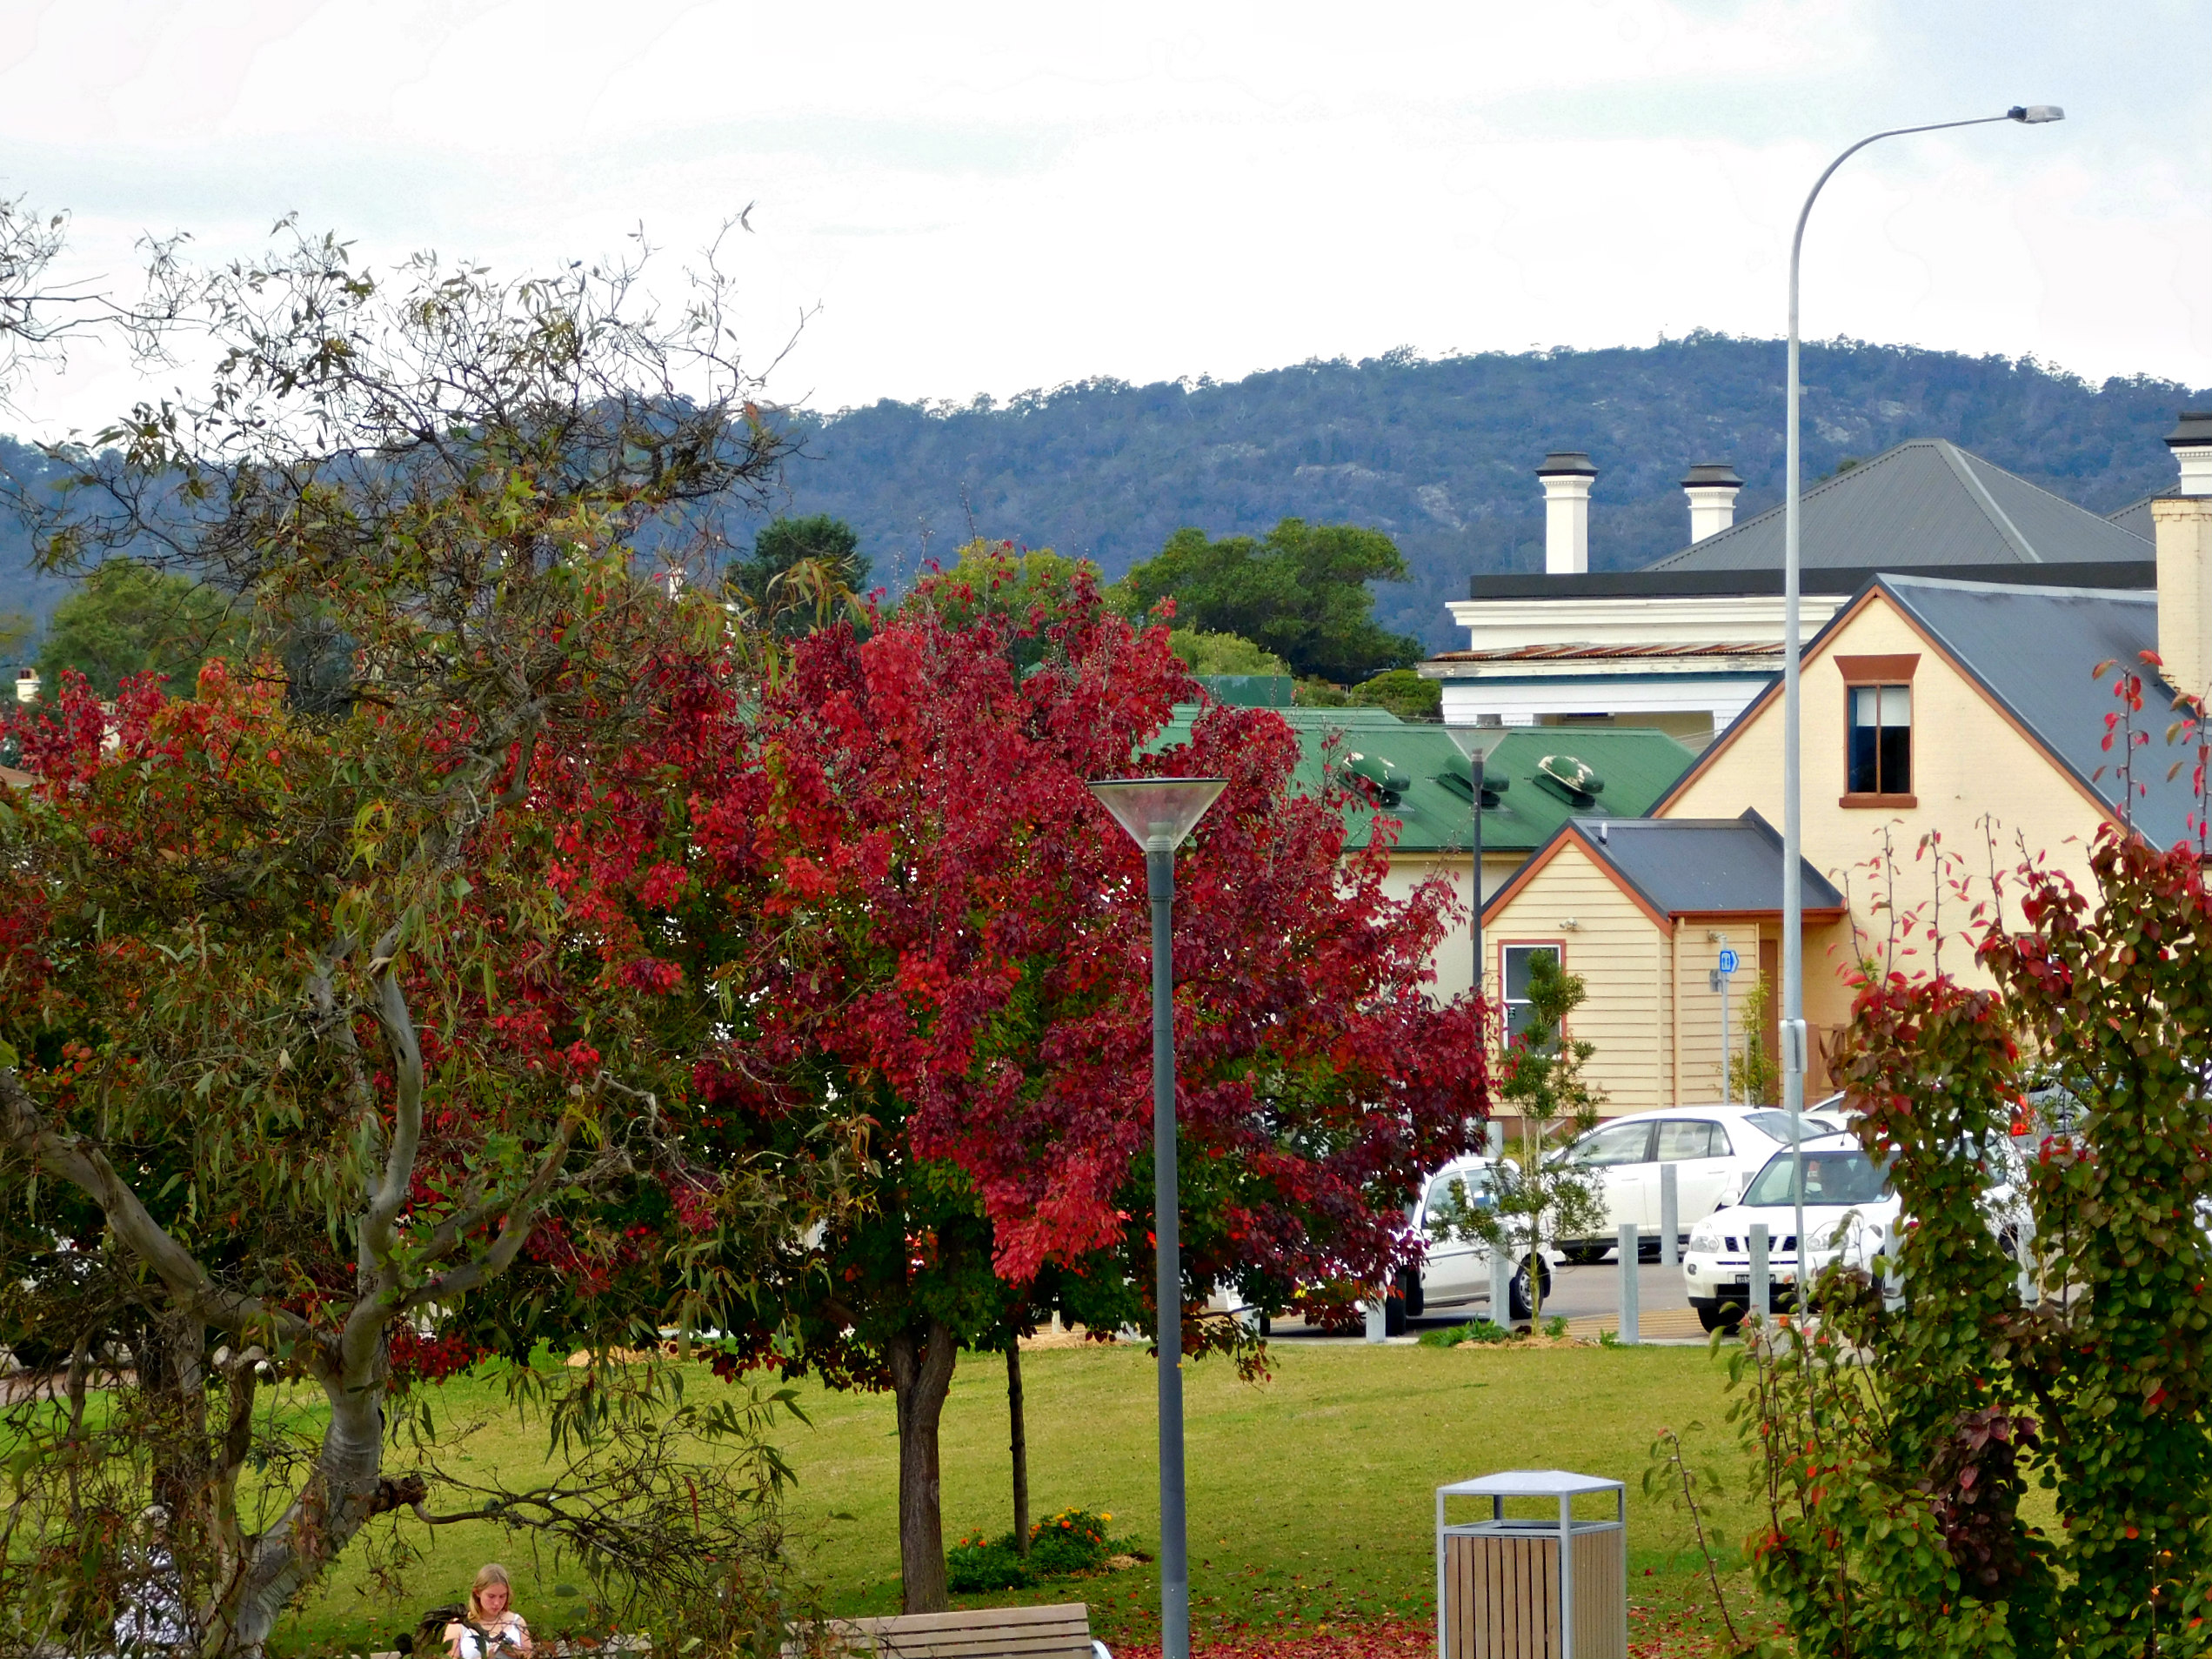 BUILDINGS IN BEGA NO 2